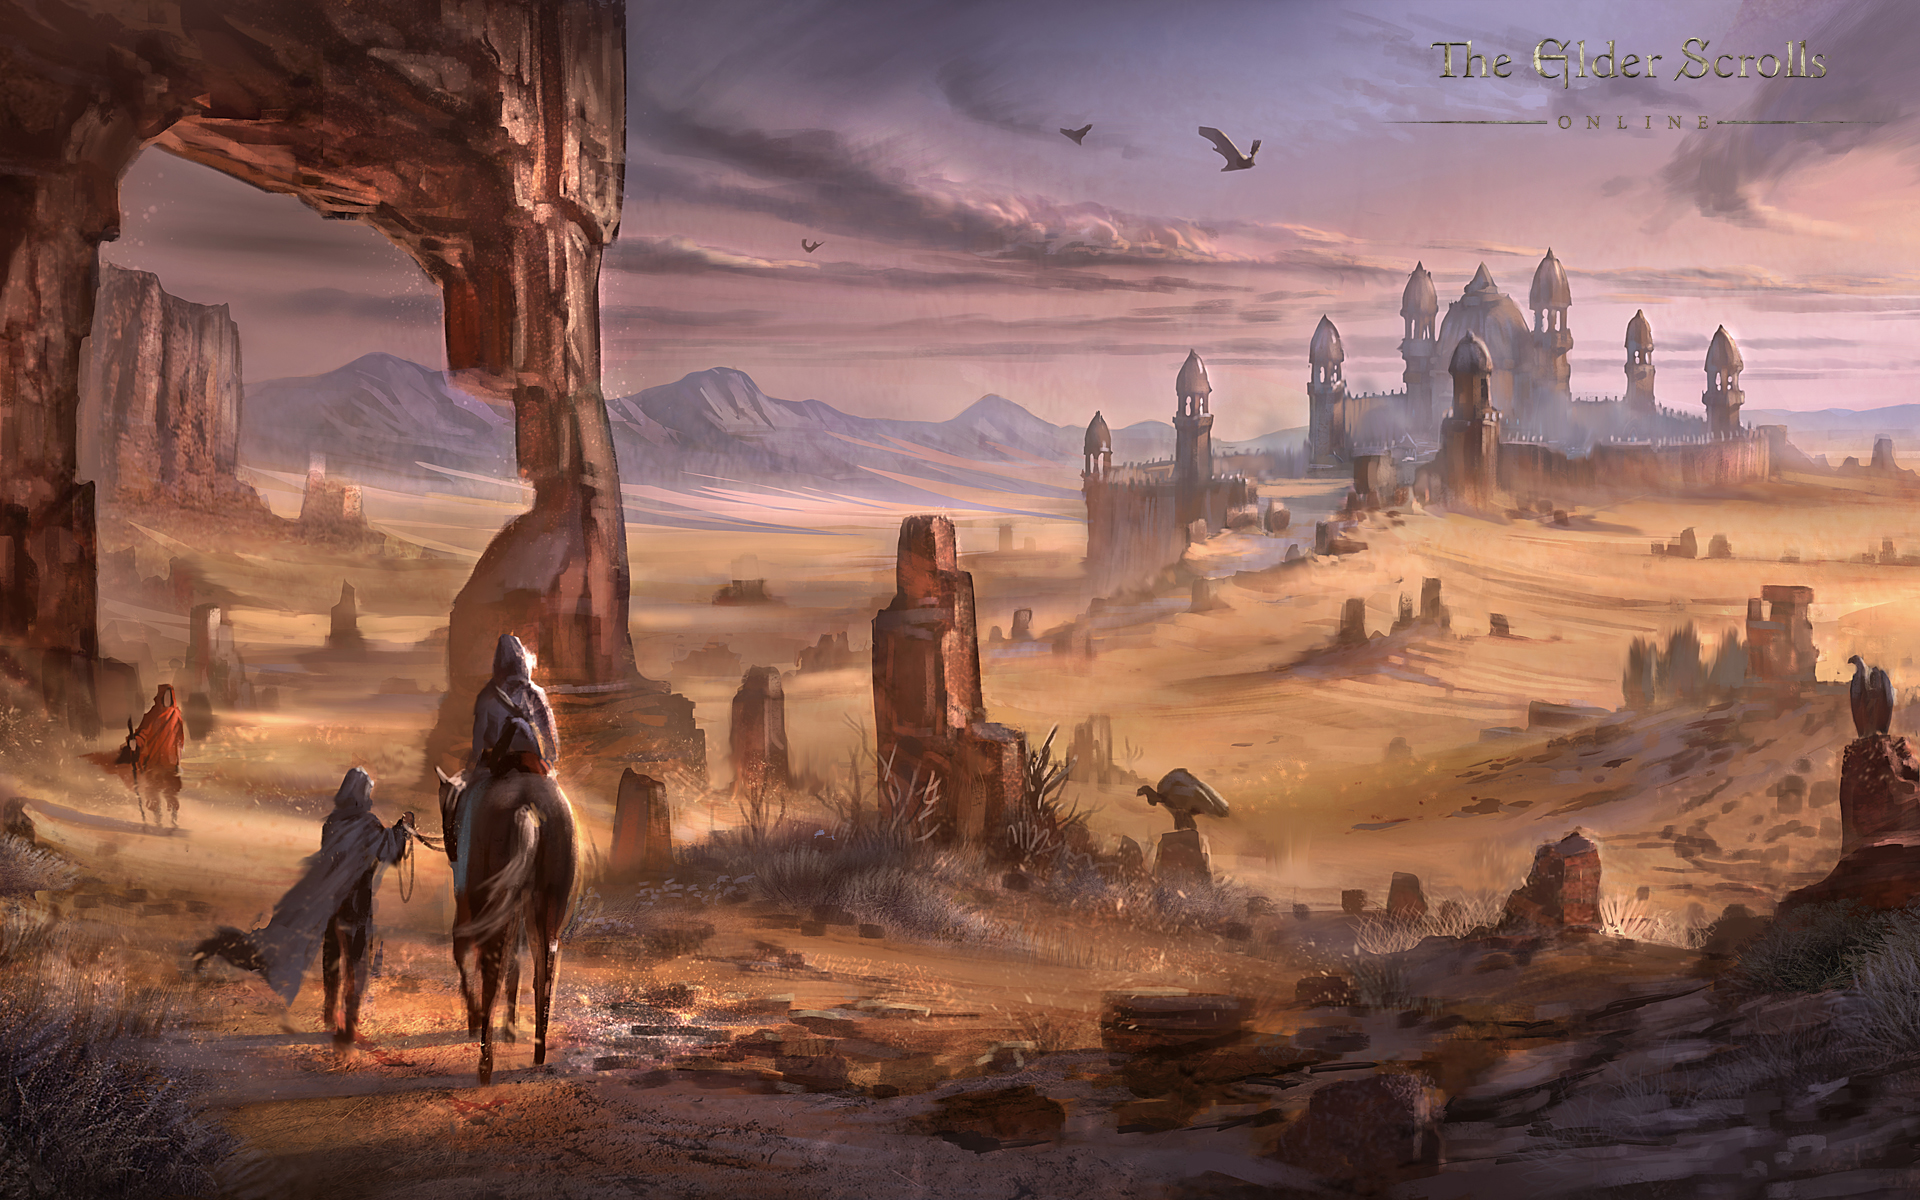 Wallpaper The Elder Scrolls Online: Alik'r Desert